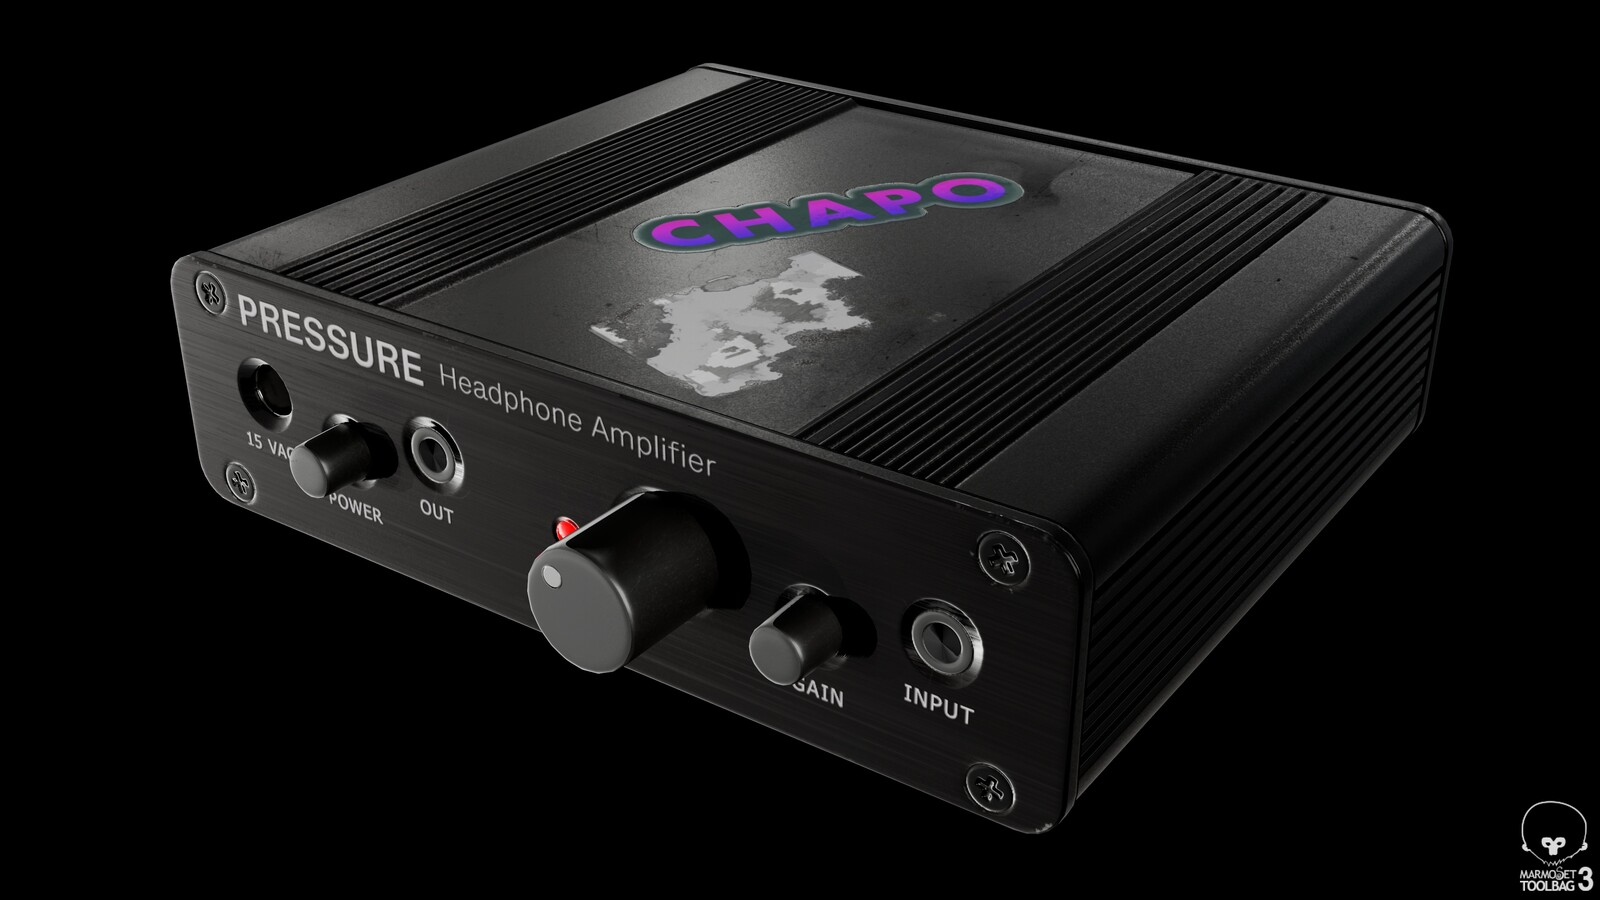 PRESSURE Headphone Amp